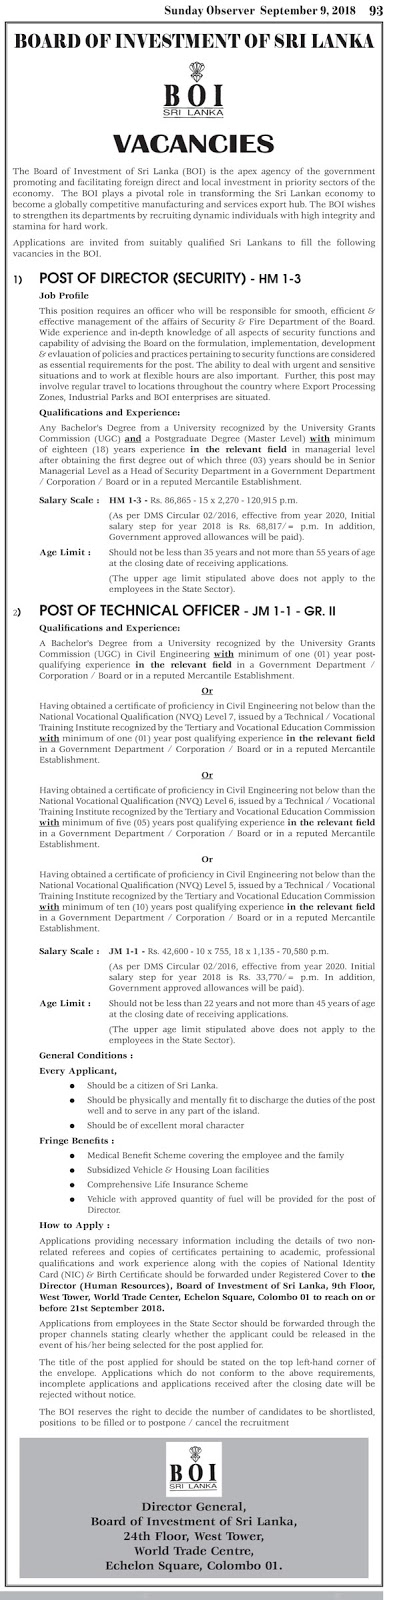 Director, Technical Officer - Board of Investment (BOI)